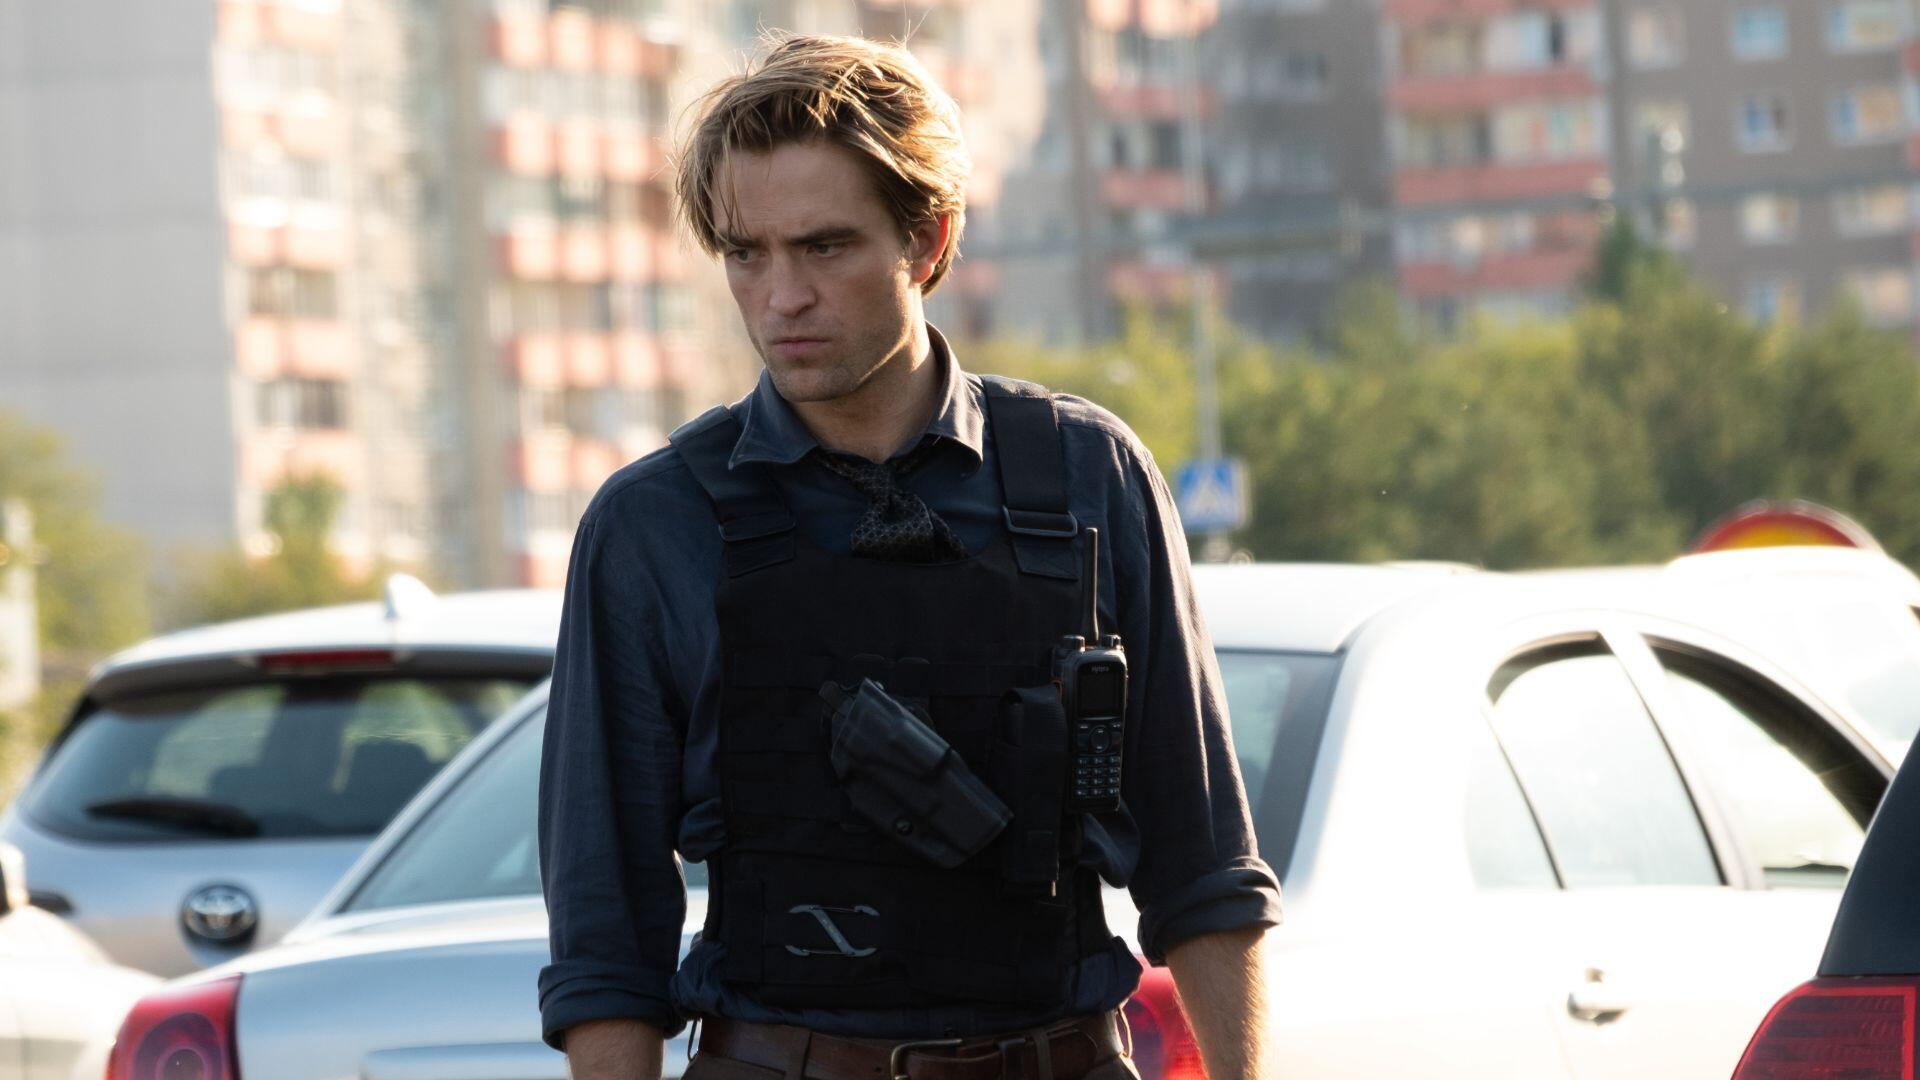 10 best movies to watch on HBO Max     - CNET